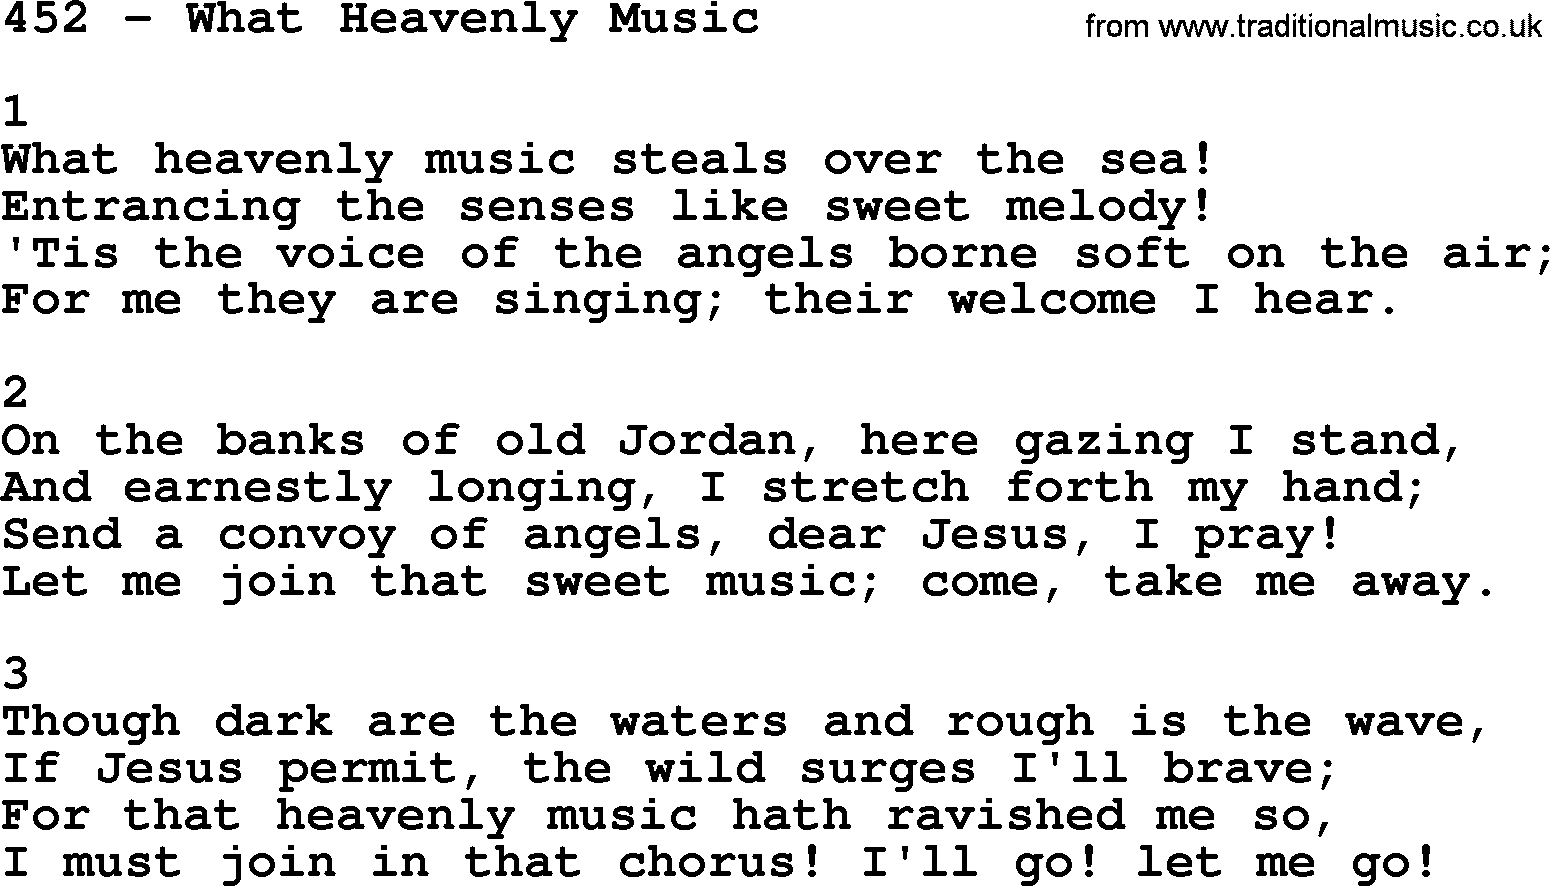 Adventist Hymnal, Song: 452-What Heavenly Music, with Lyrics, PPT